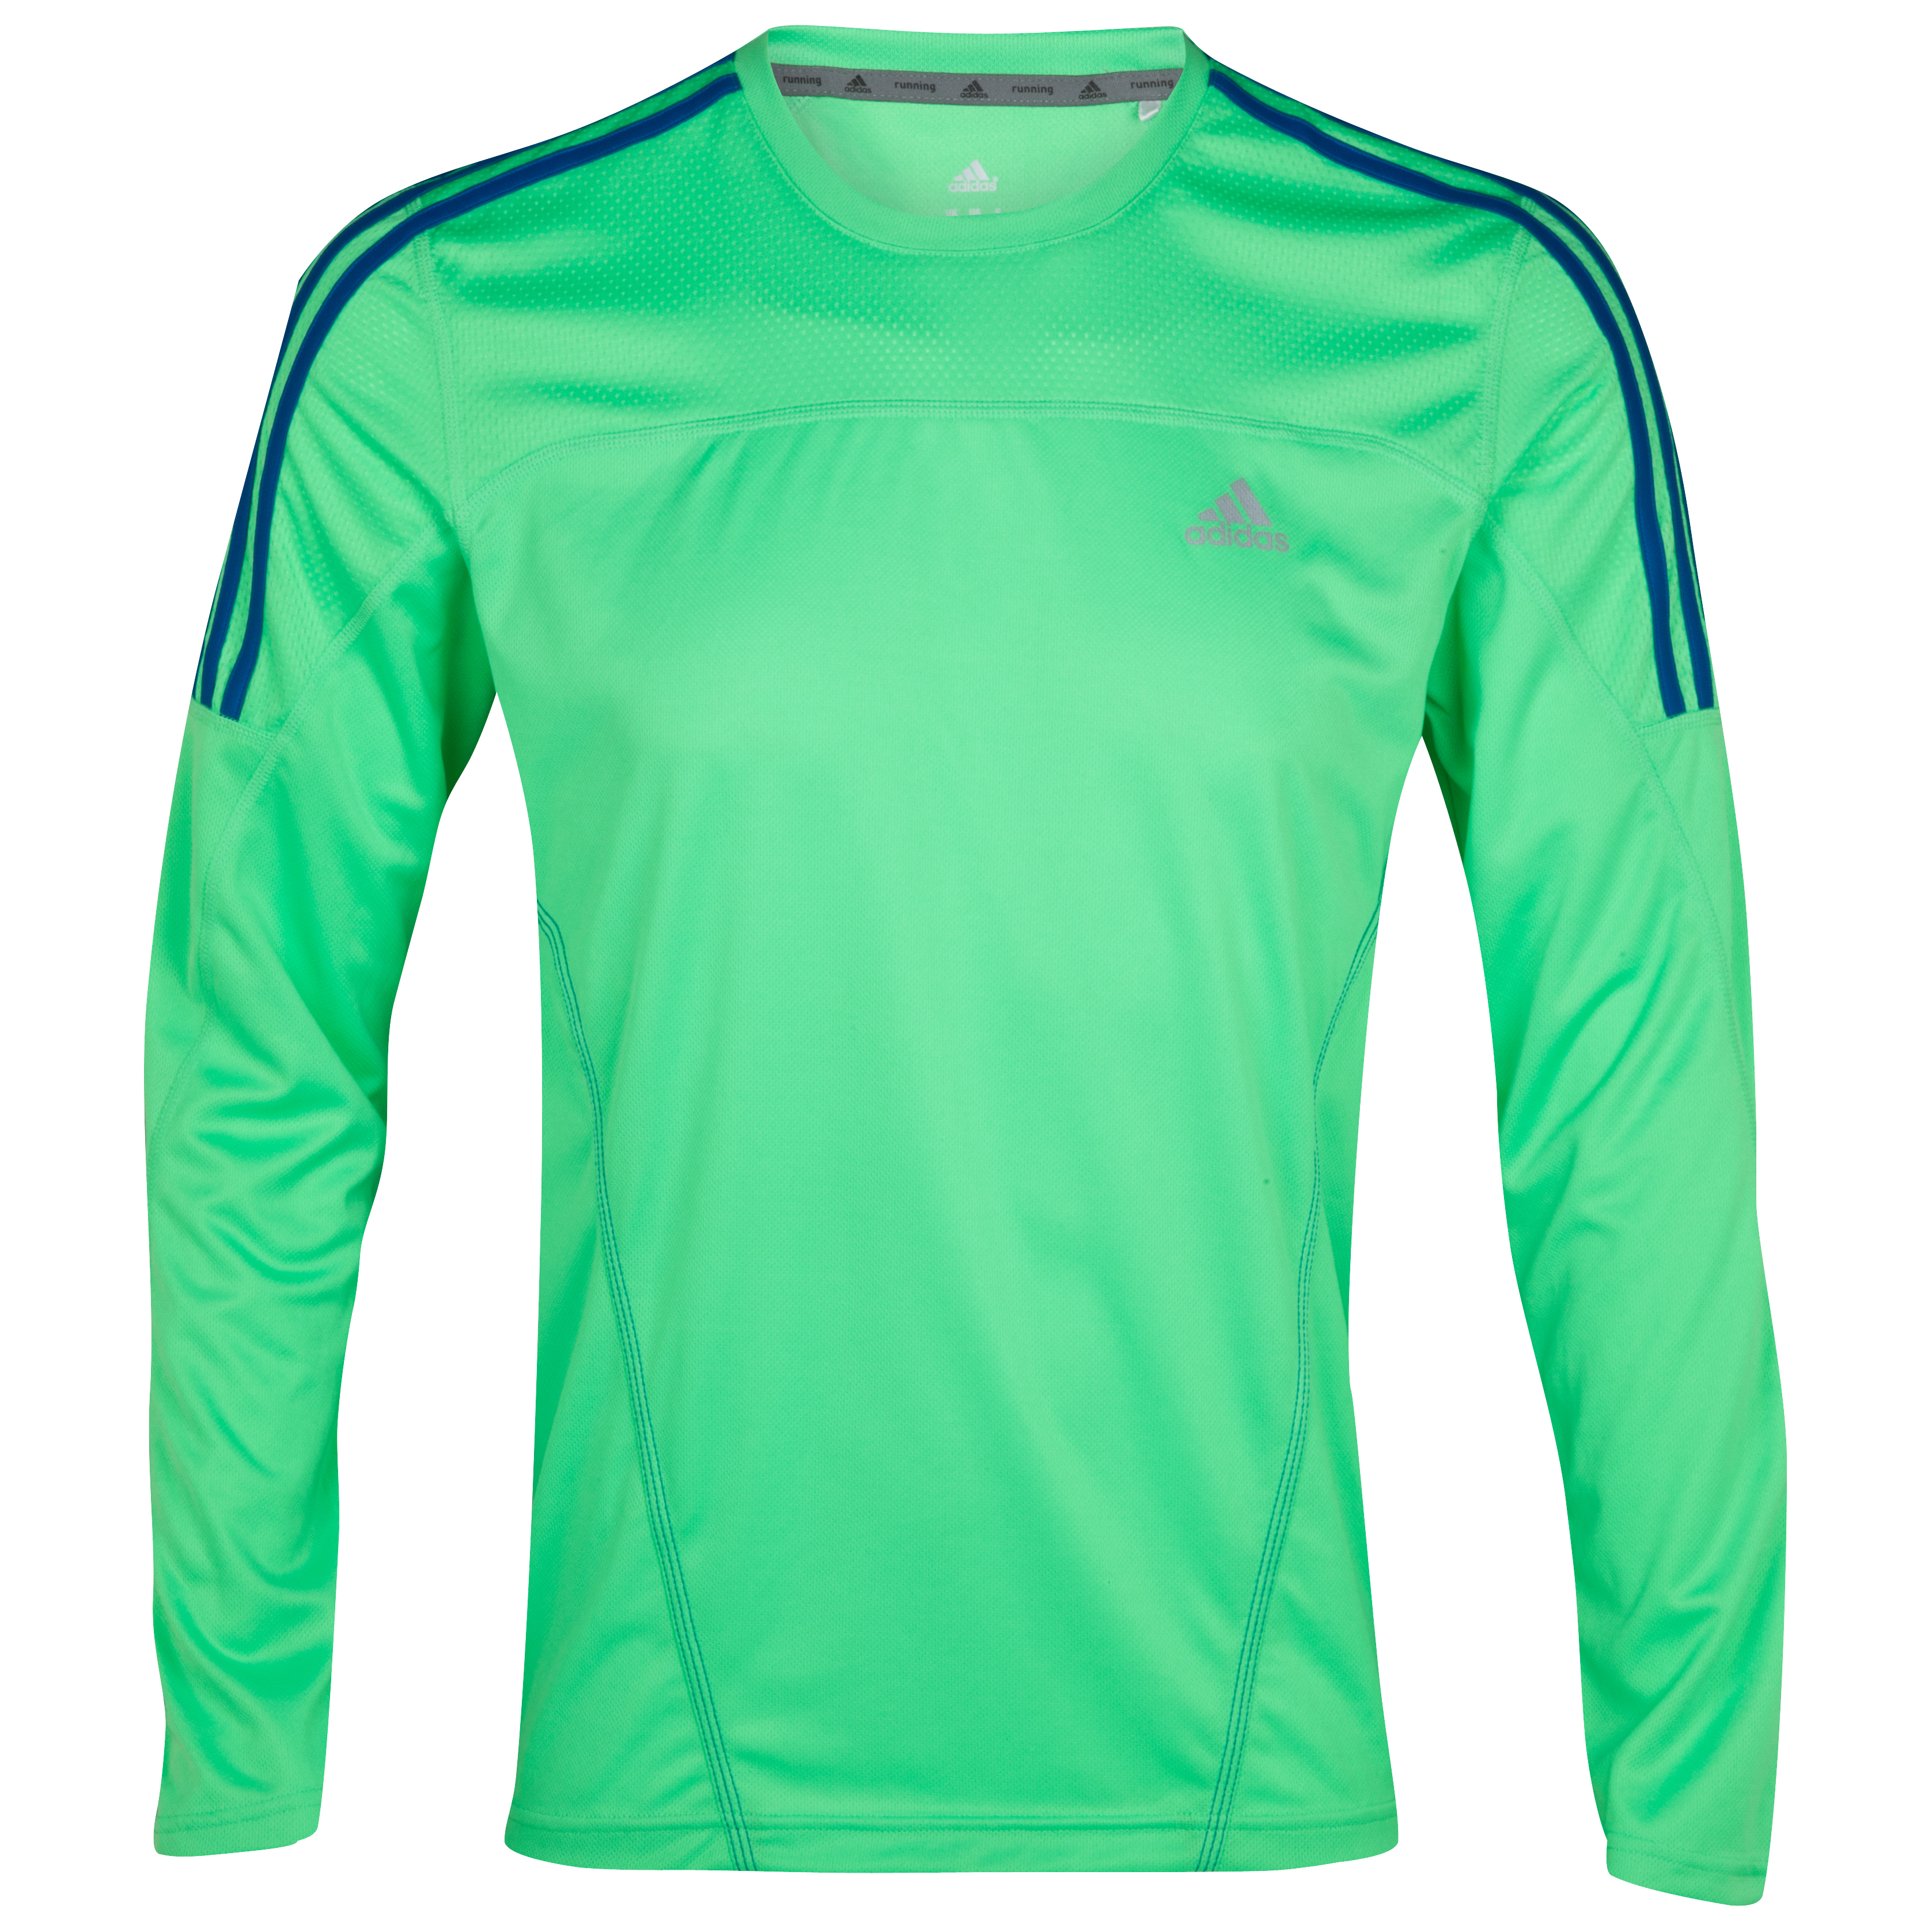 Adidas Response T-Shirt - Long Sleeve - Green Zest/Prime Blue